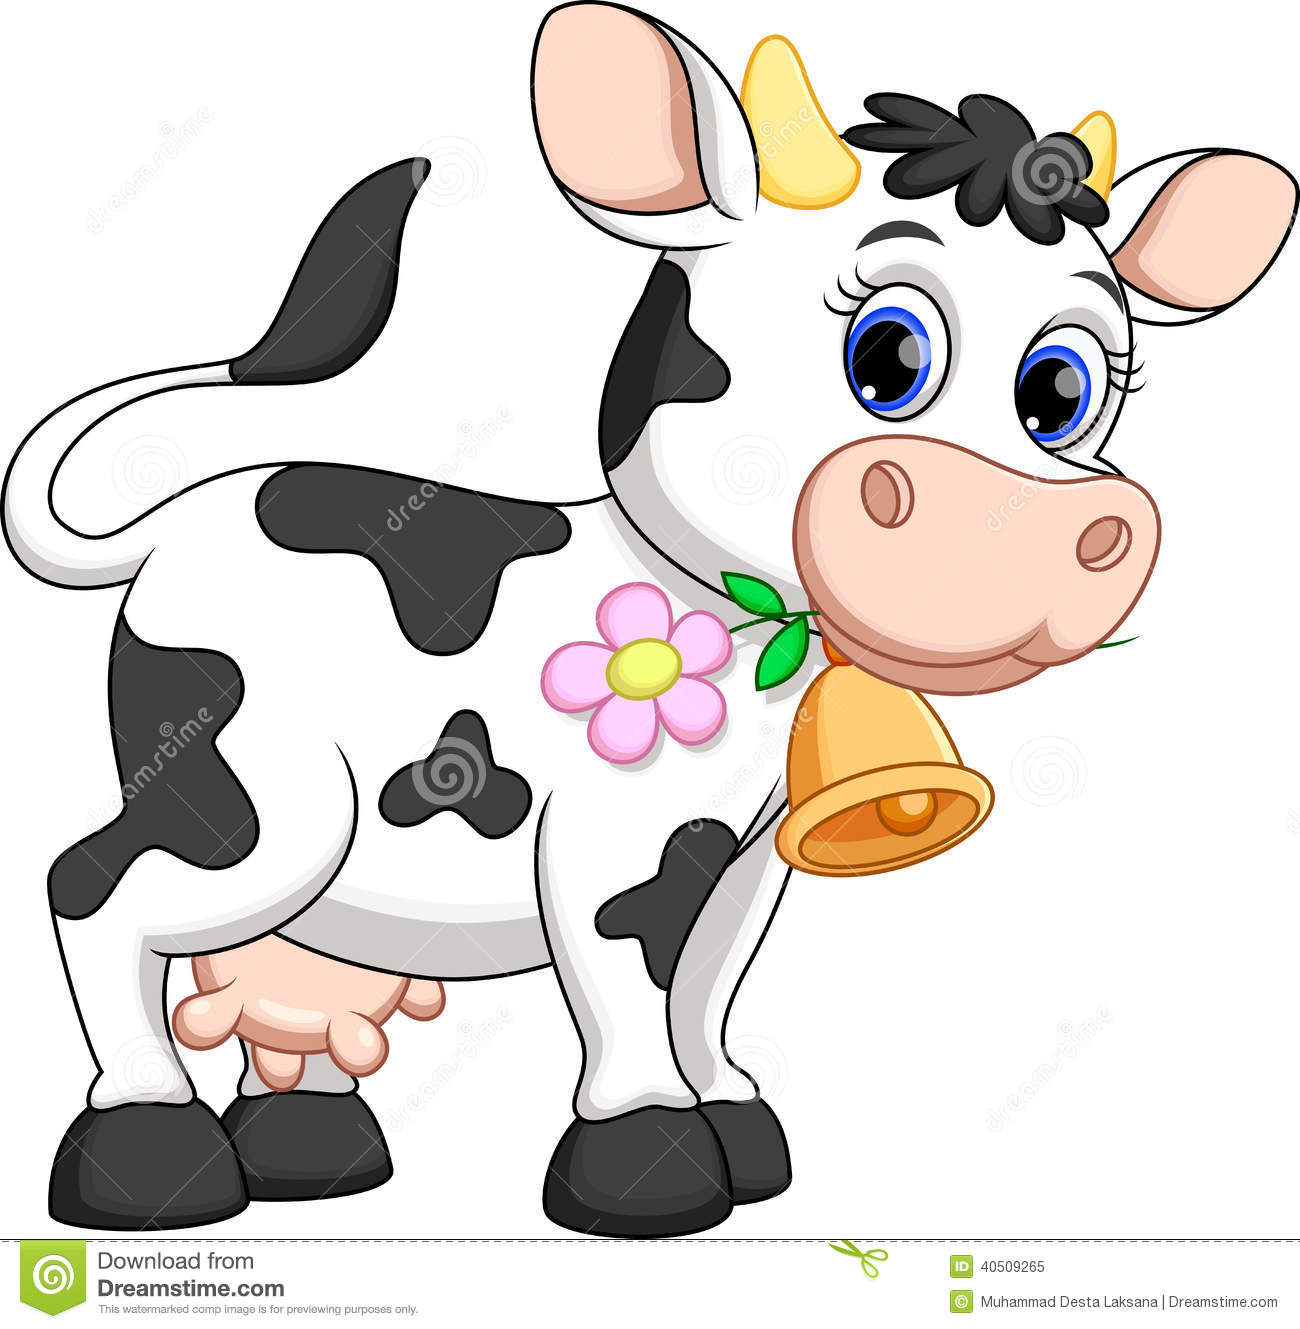 Cute Cow Cartoon Stock Illustration - Image: 40509265